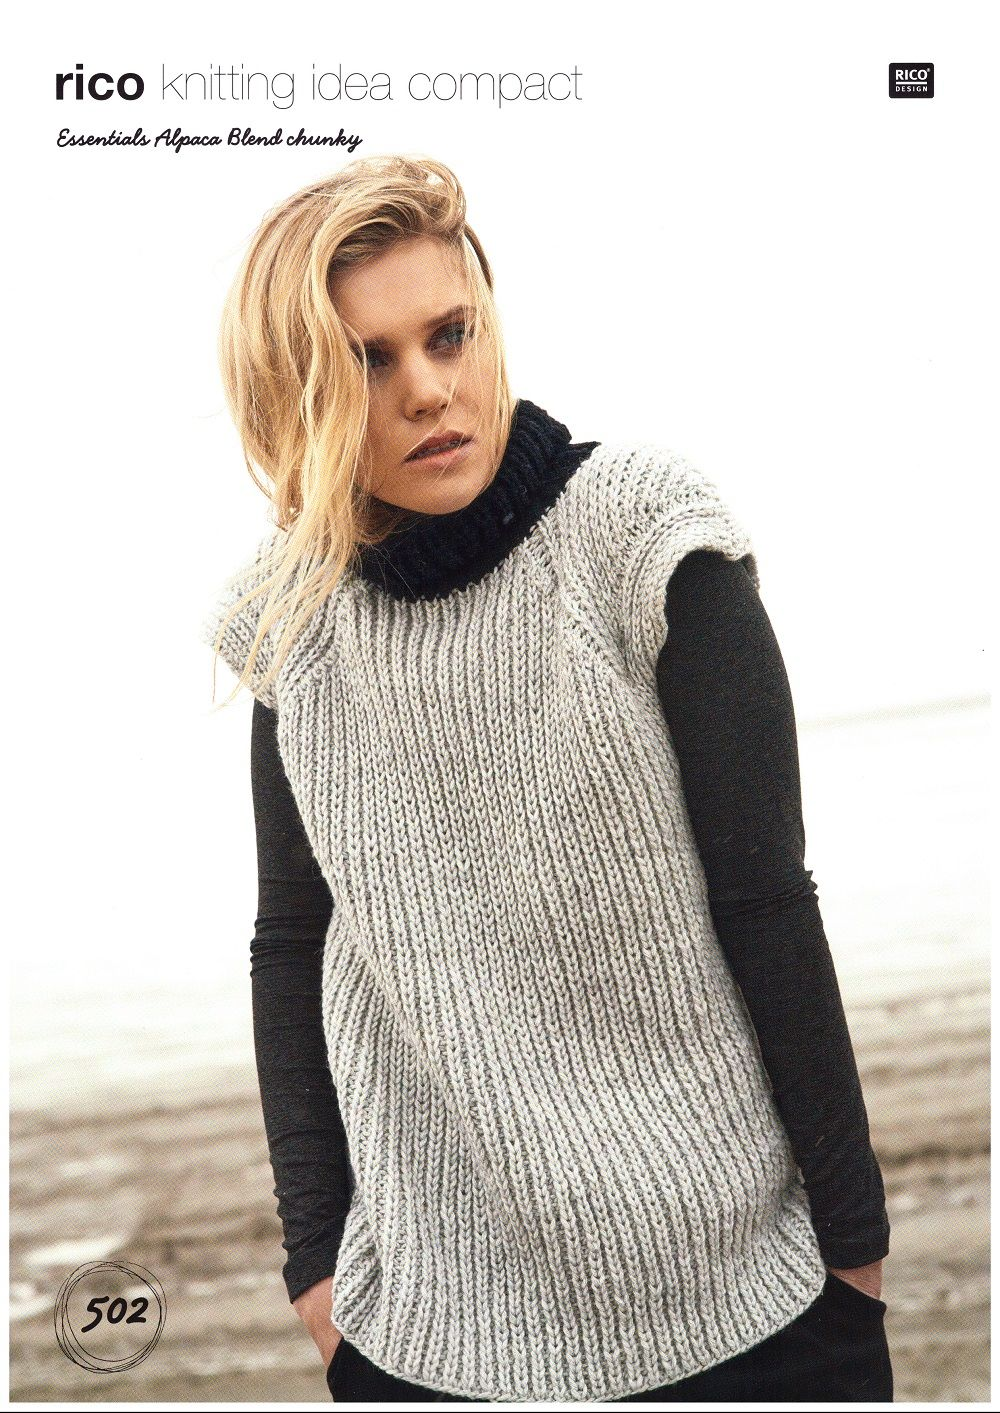 Rico Ladies Vest Knitting Pattern In Essentials Alpaca Blend Chunky 502